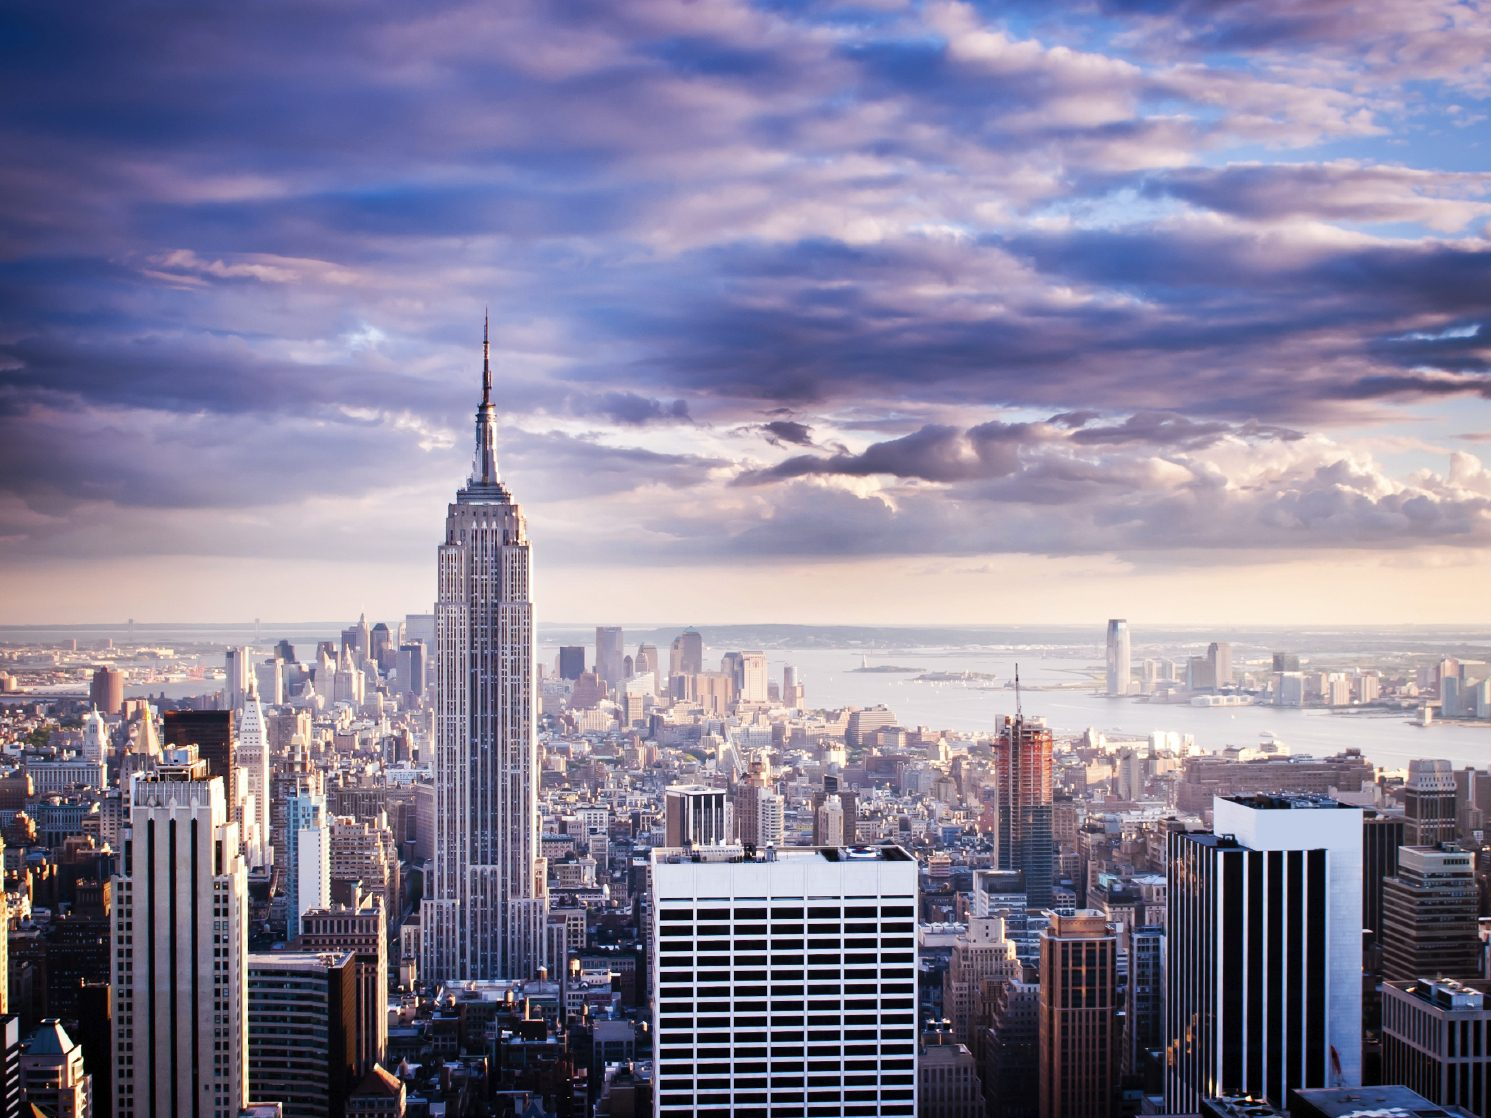 7. L'Empire State Building, New York